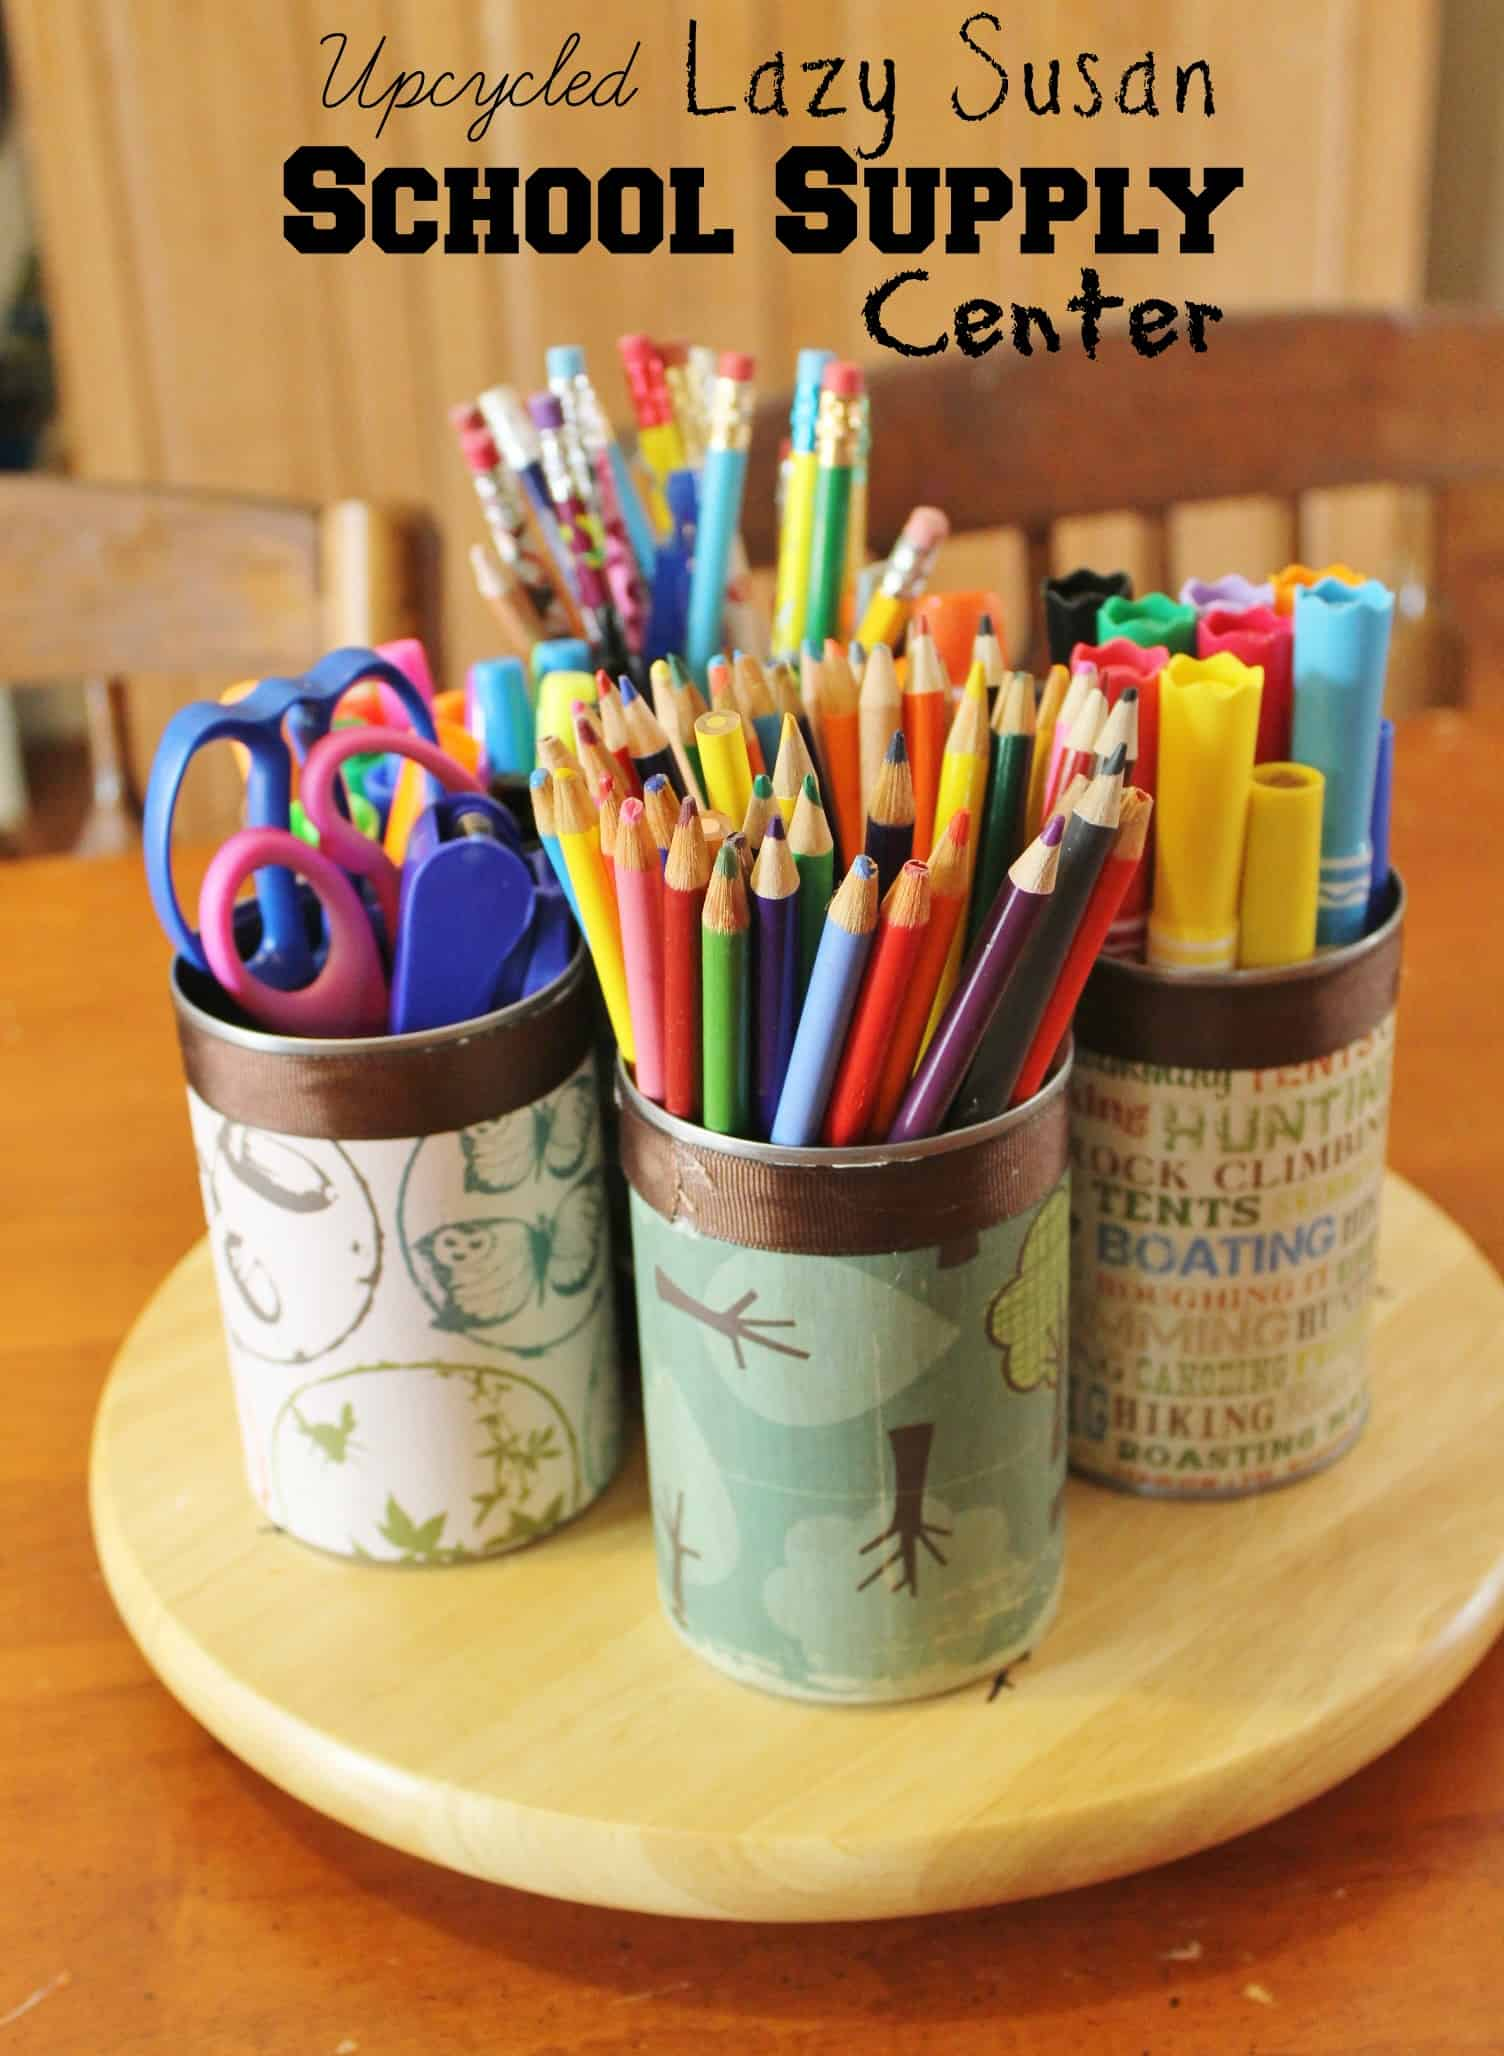 Upcycled Lazy Susan School Supply Center - GREAT Teacher Gift ...